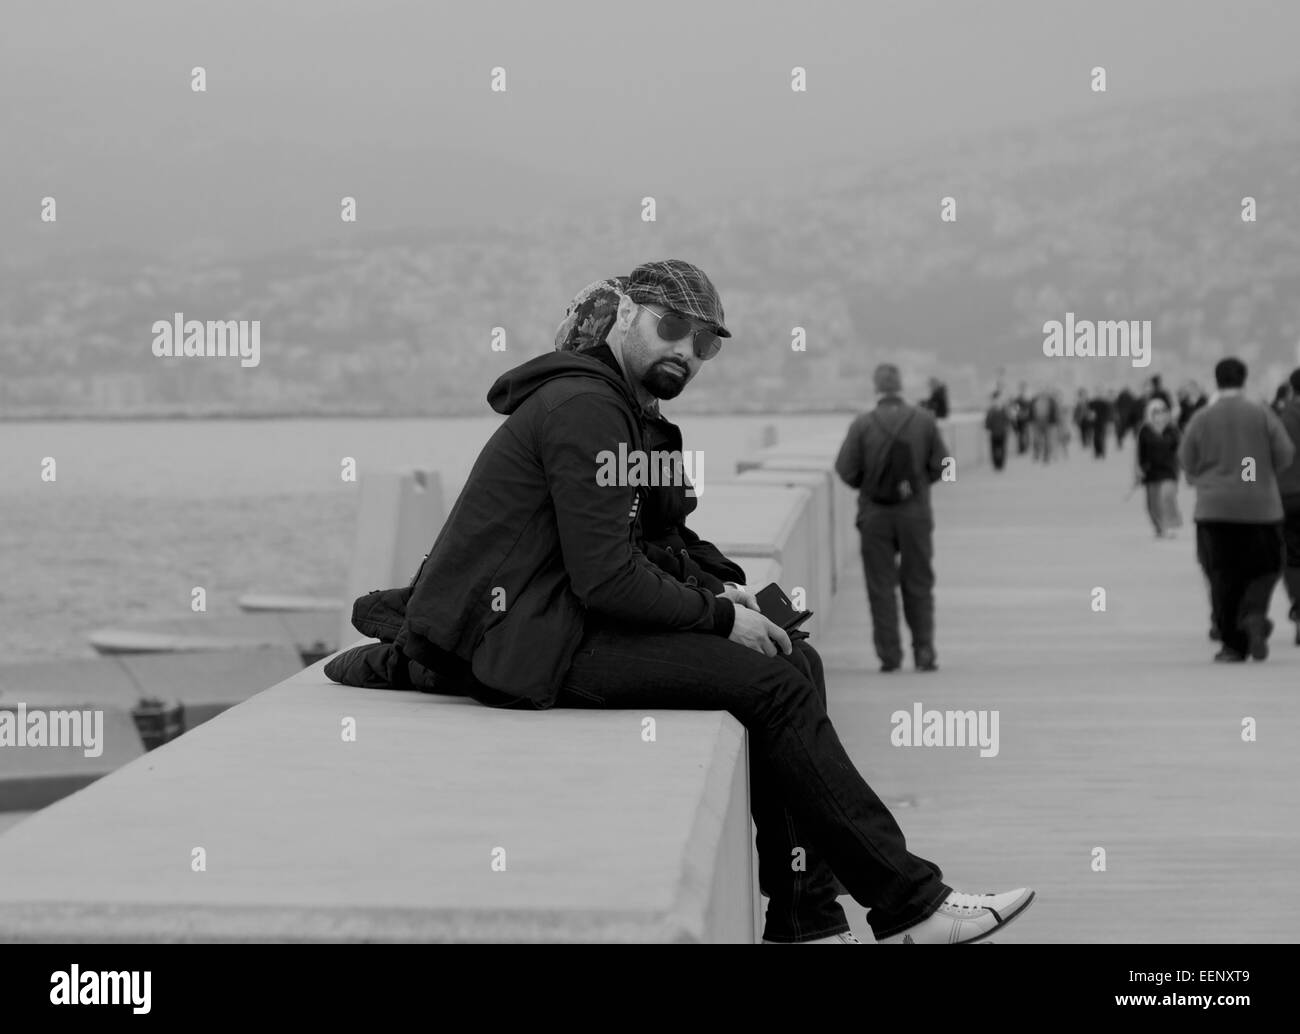 Relaxing by the sea in Beirut - Stock Image